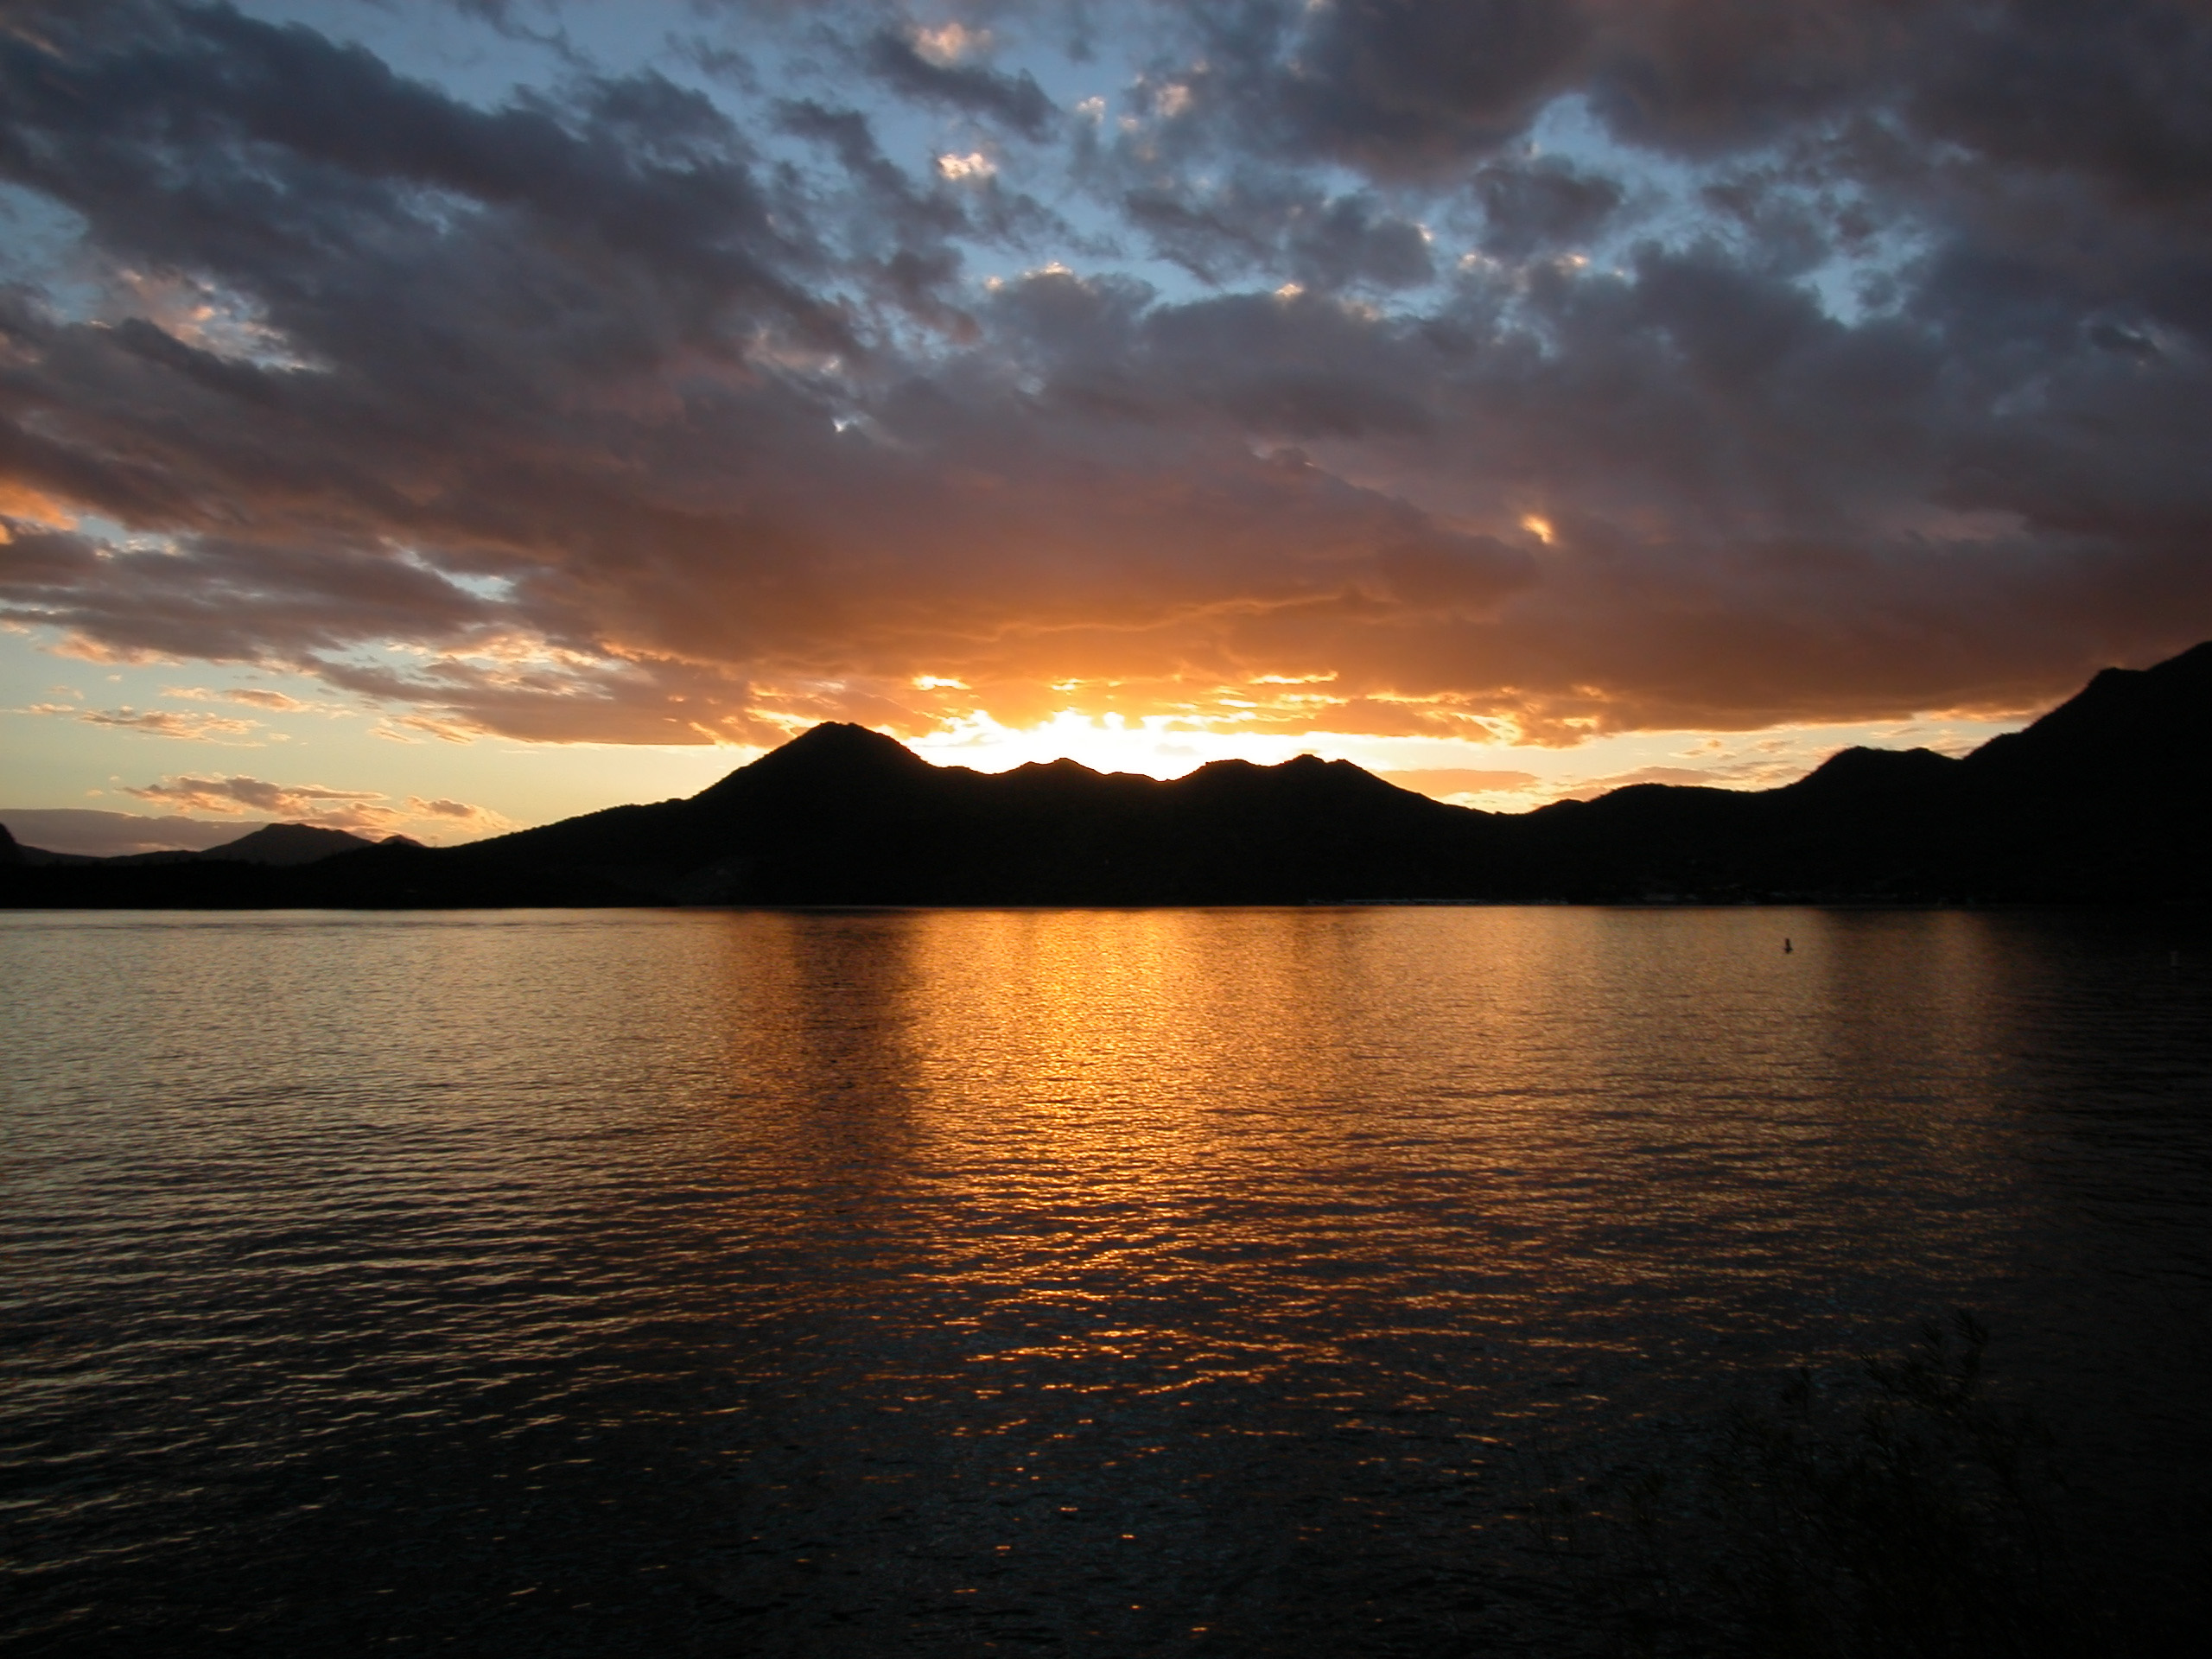 Arizona-sunset Nature Wallpaper For Mobile Free Download - Tri Cities Washington Landscape - HD Wallpaper